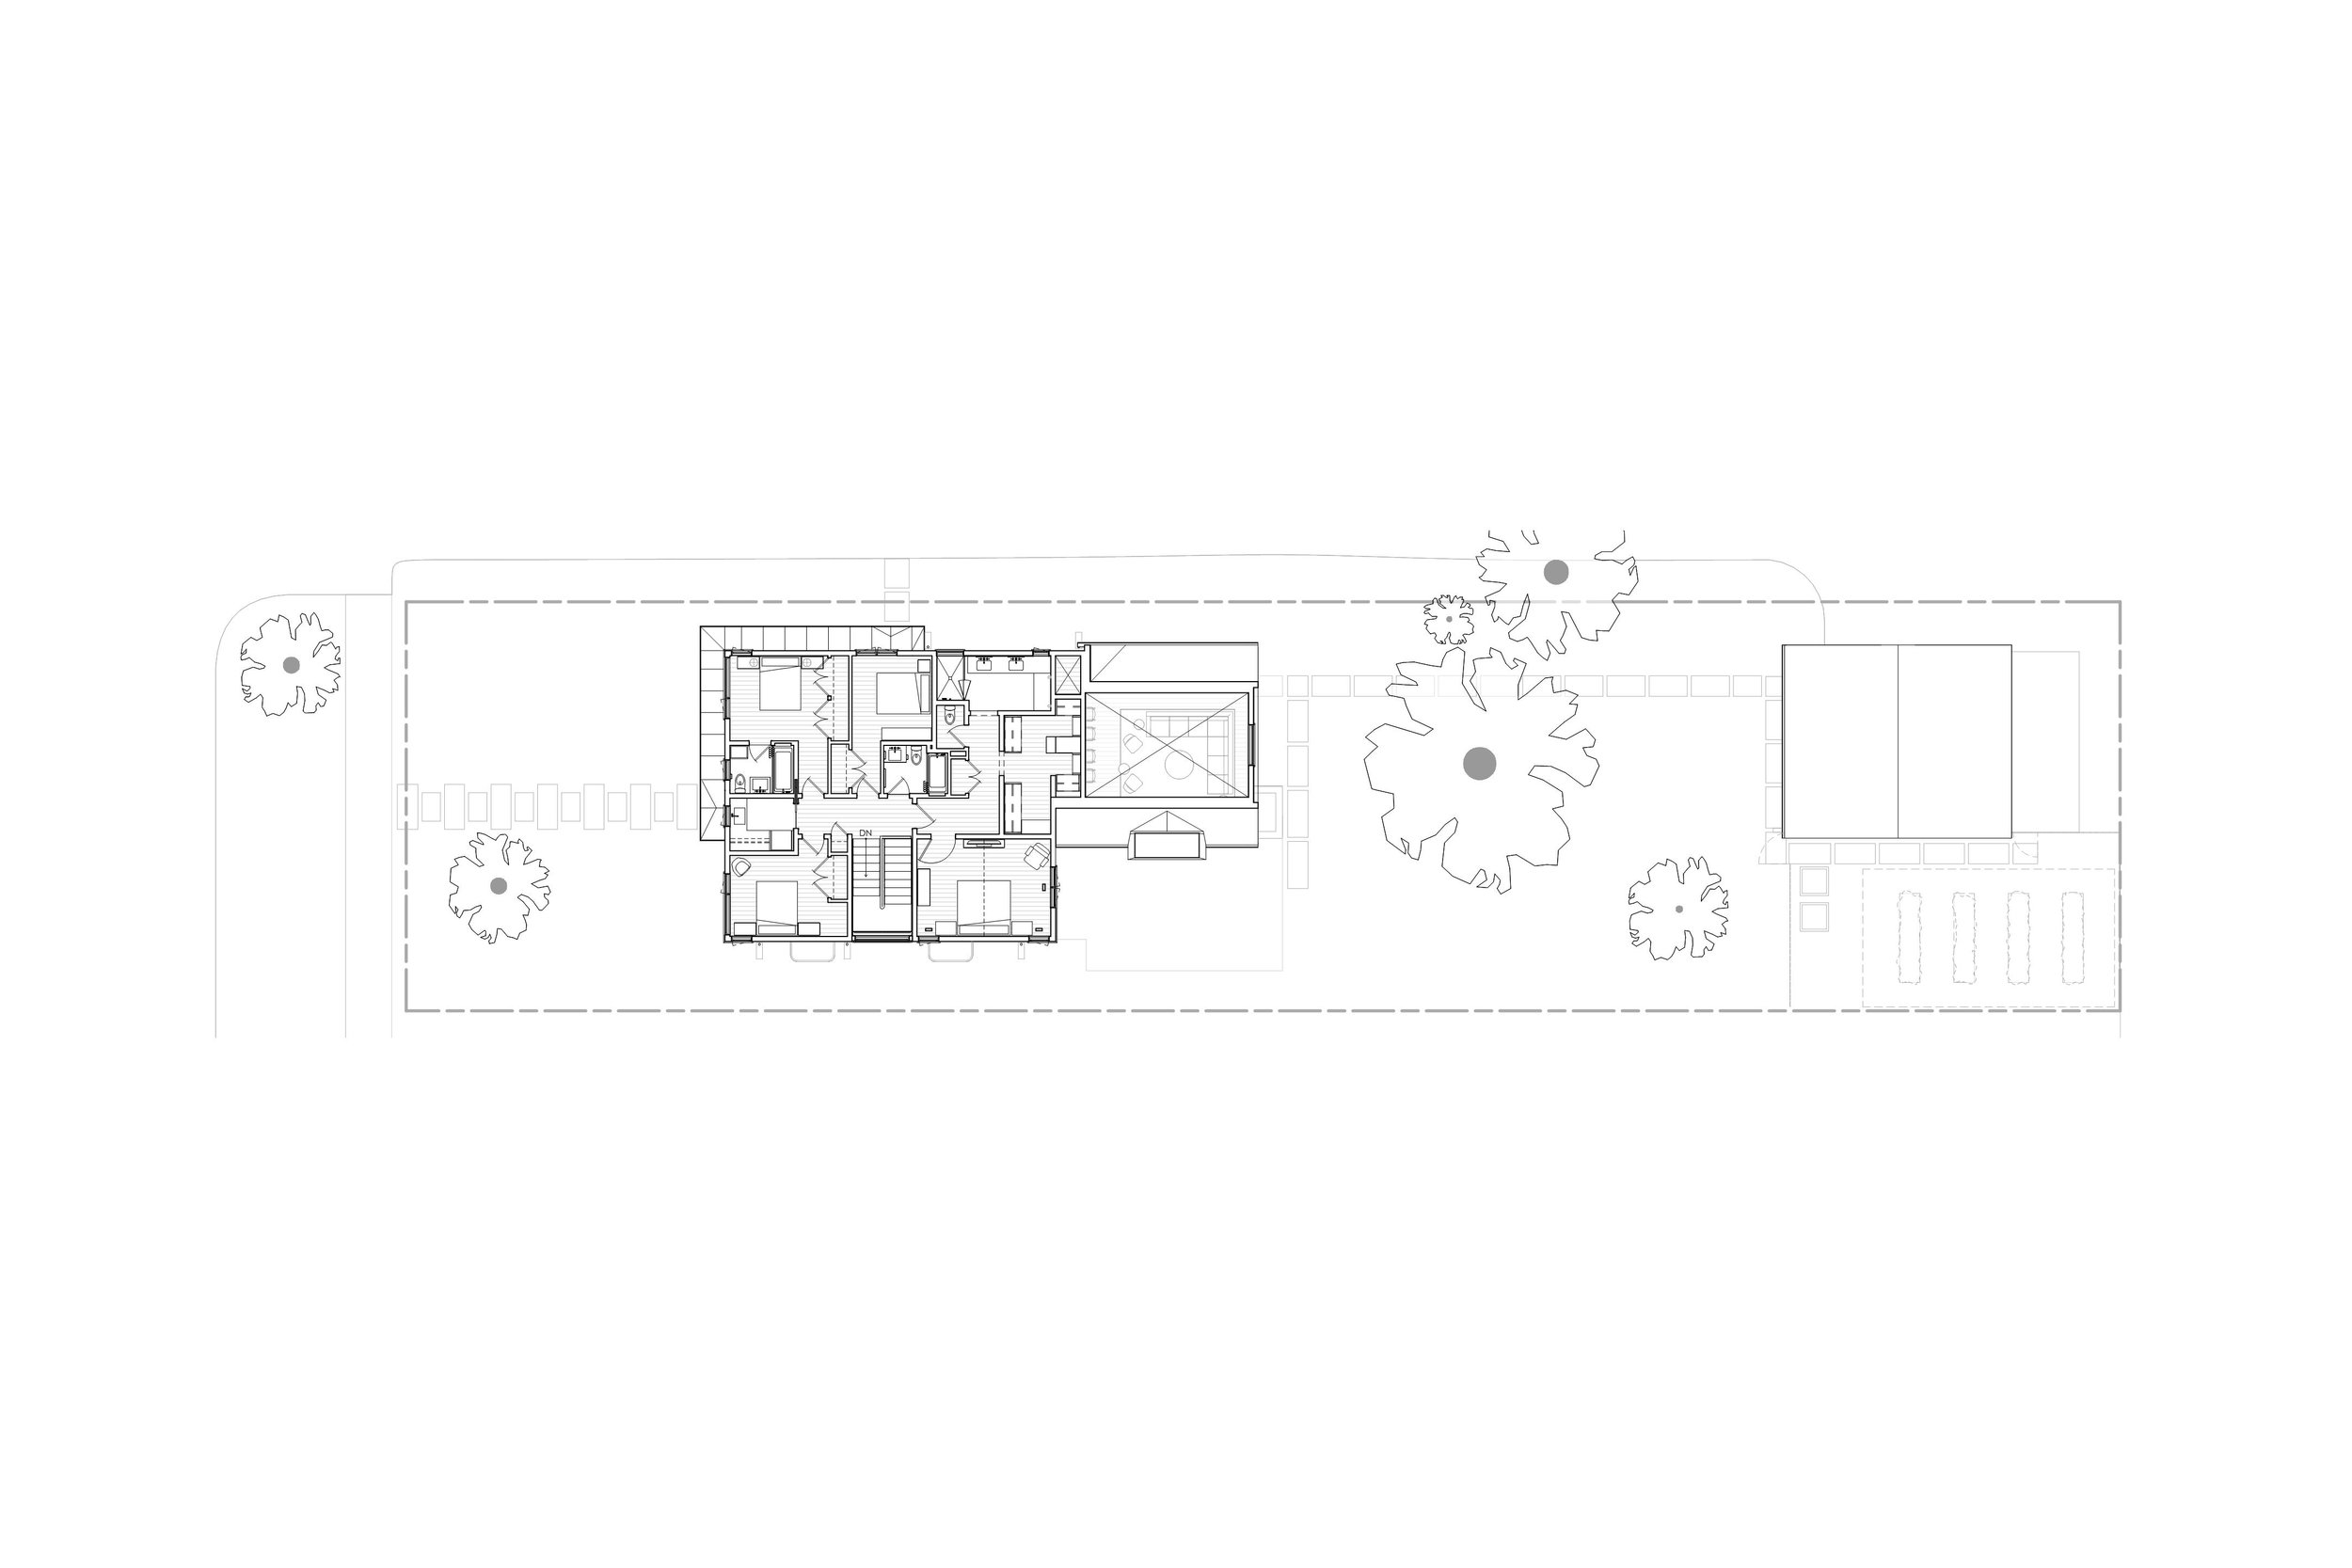 Family Farmhouse_008 Plan F02.jpg